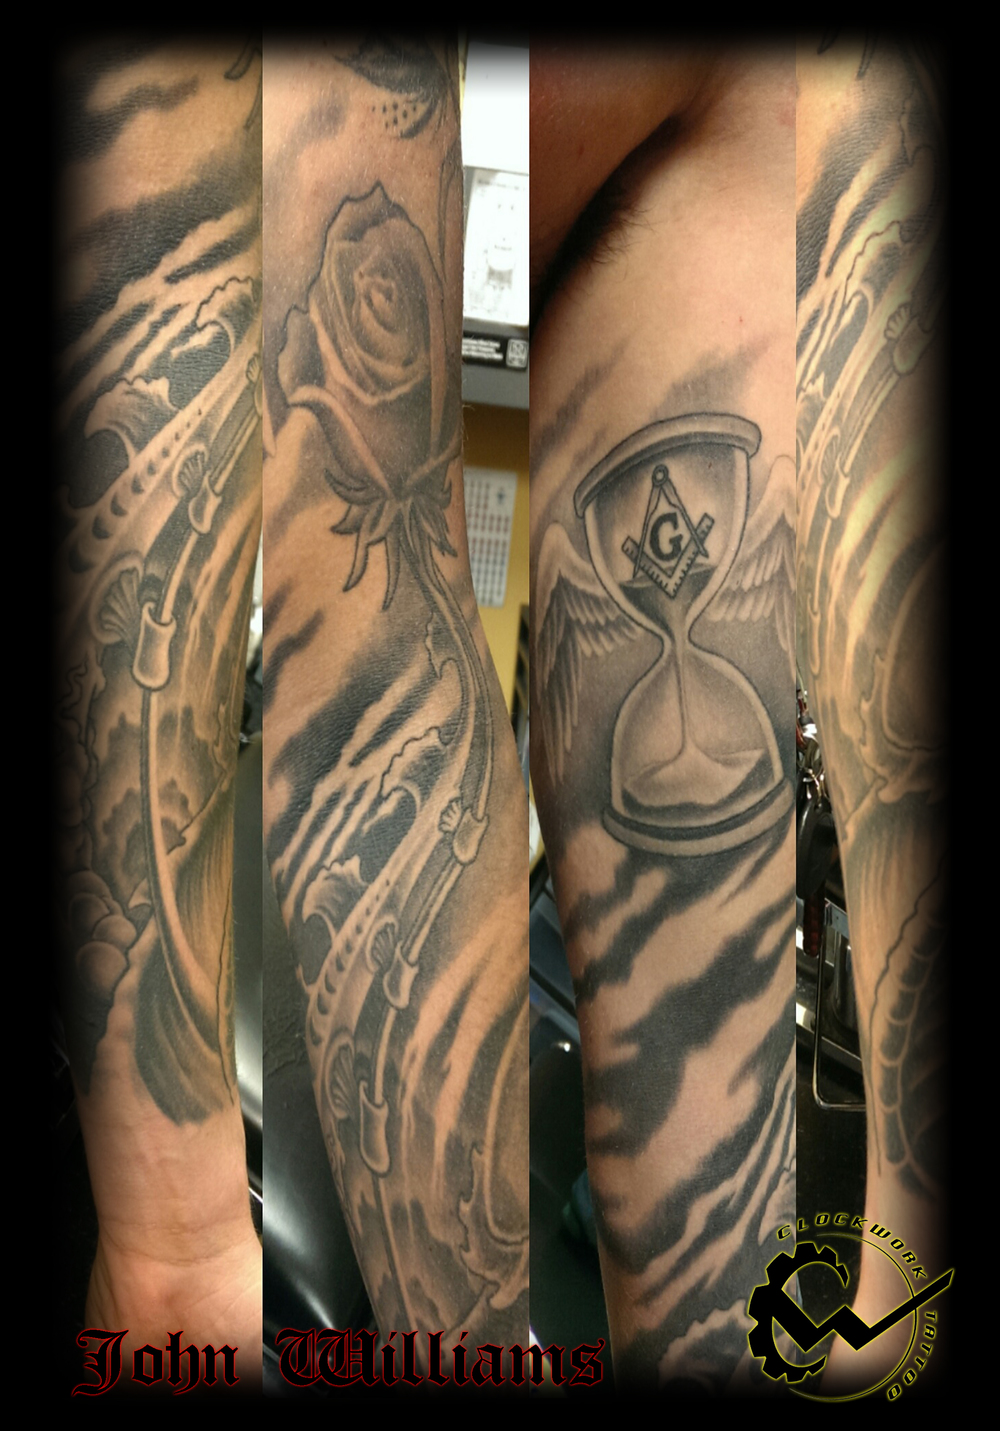 johndavissleevetattoo.jpg